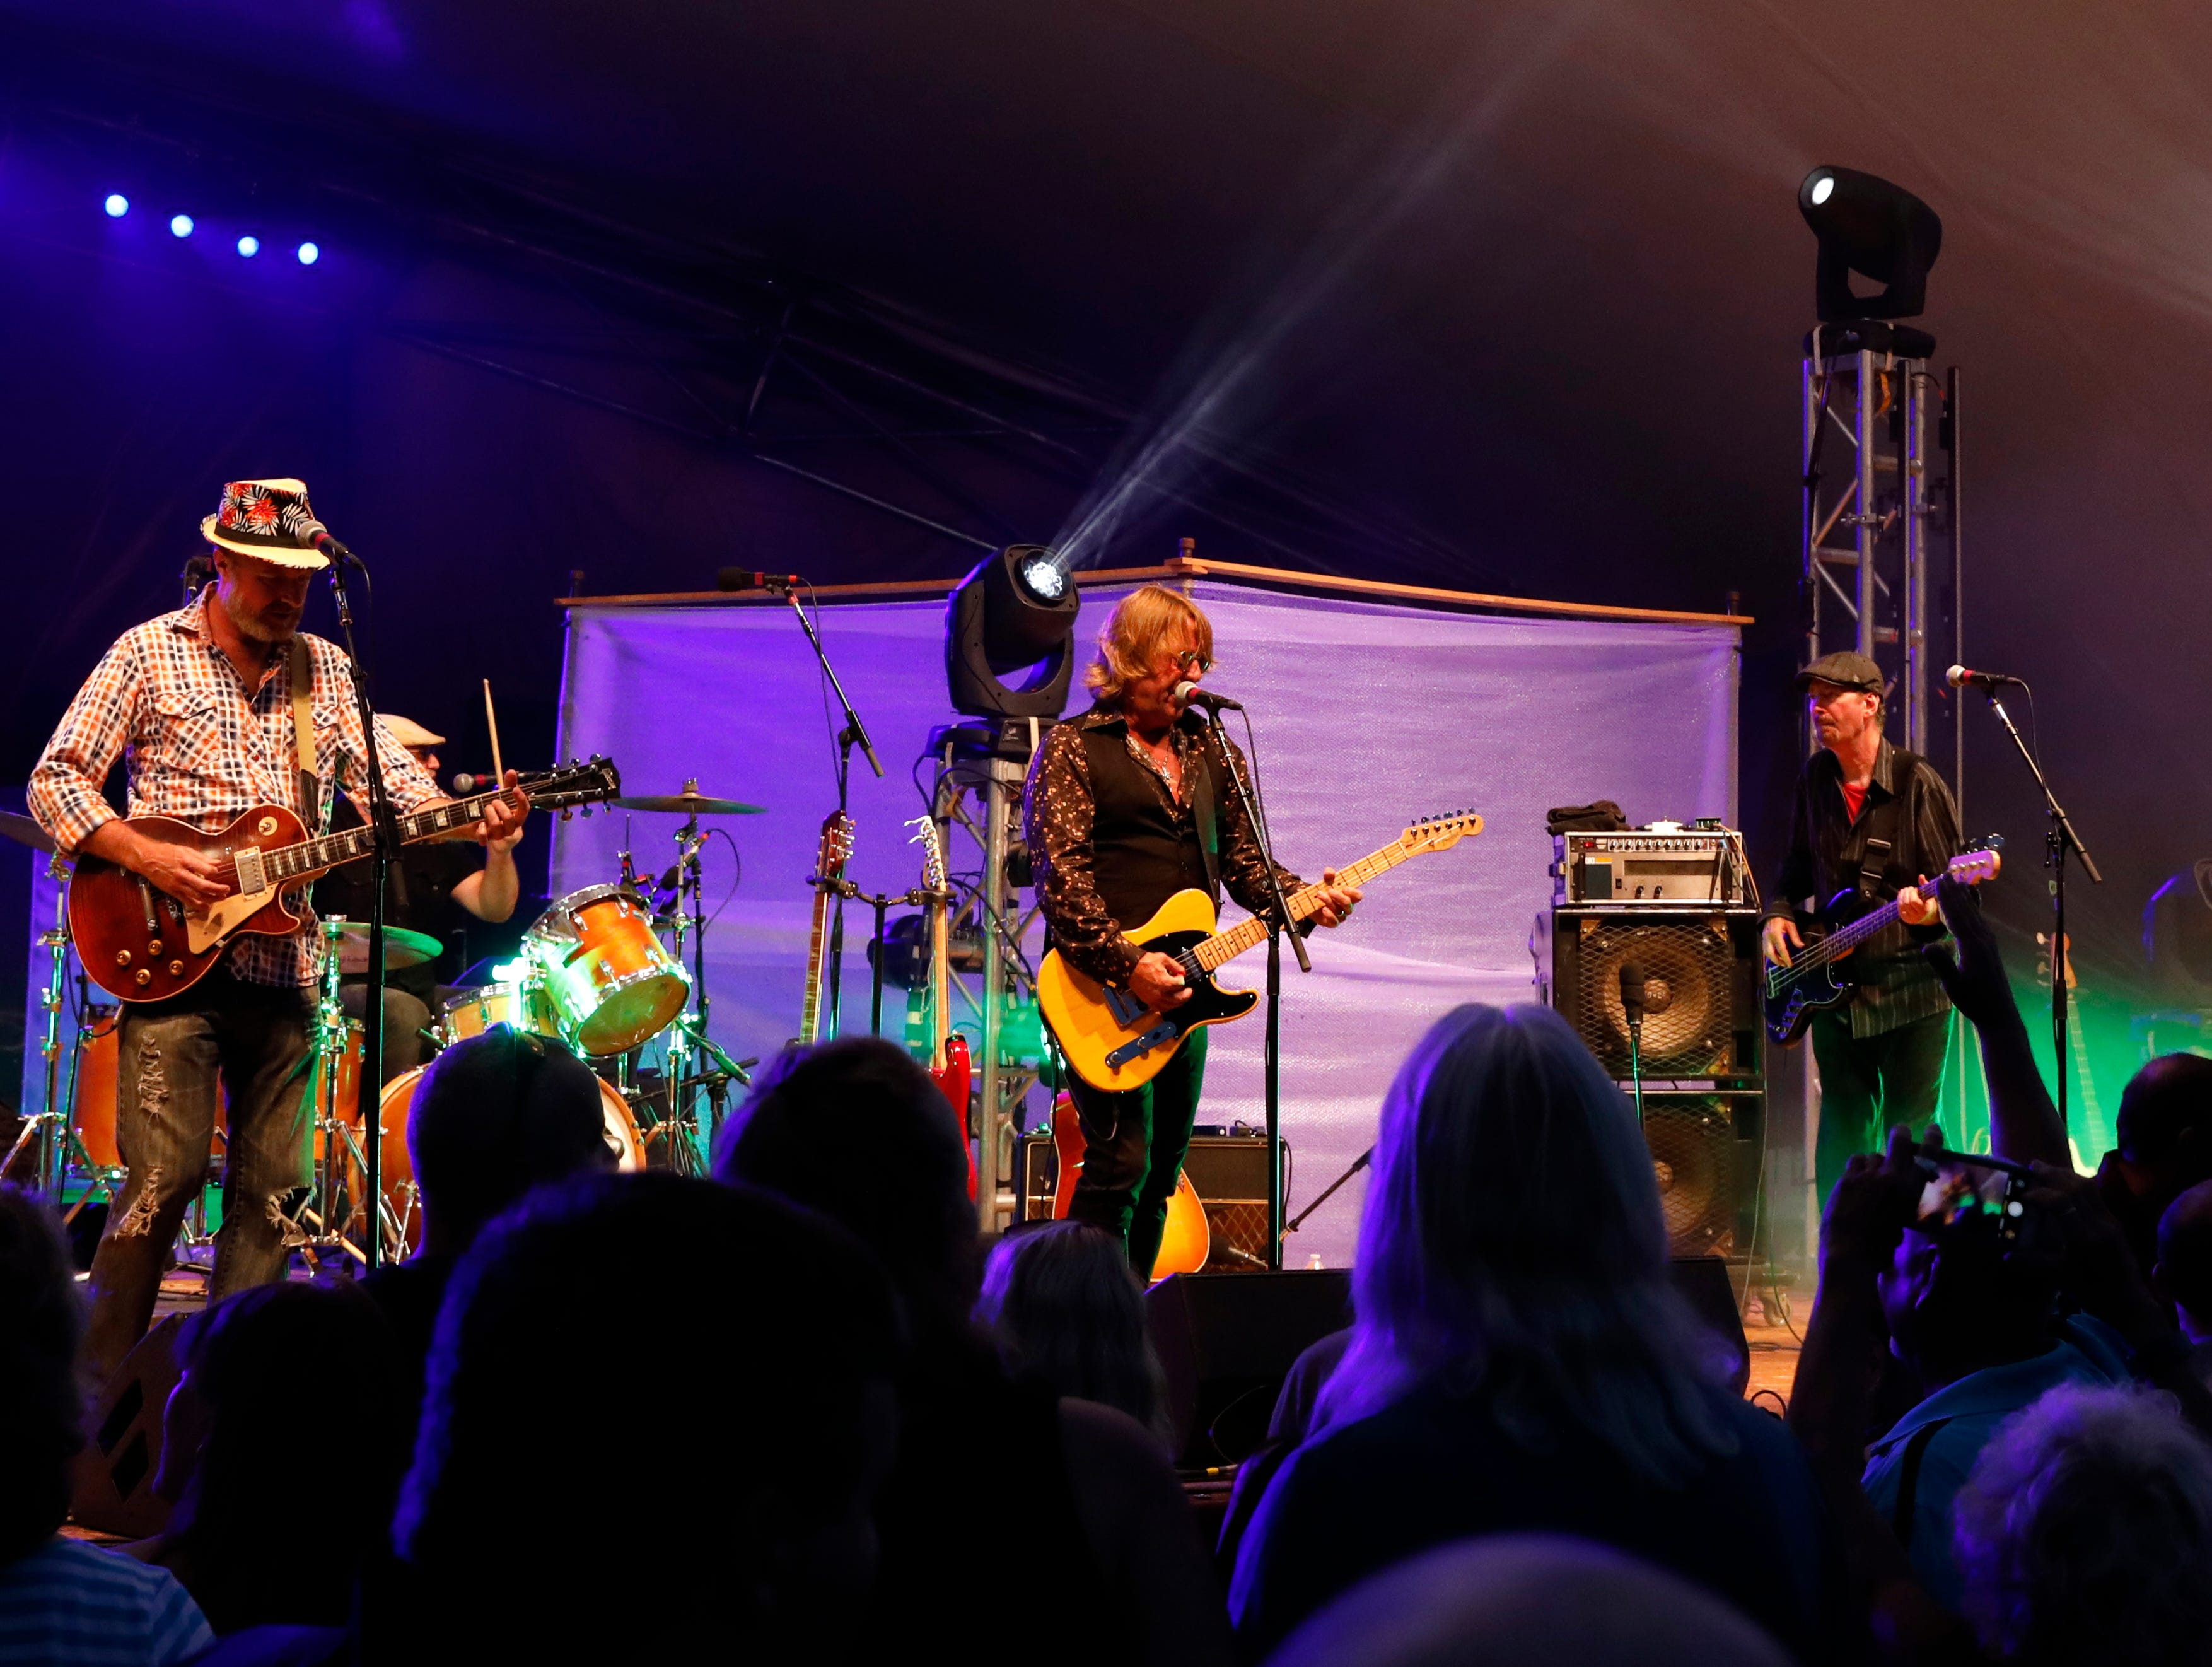 Full Moon Fever, a Tom Petty tribute band, performed Wednesday night, July 25, 2018, at the Ohio University Lancaster Wendel Concert Stage as part of the Lancaster Festival.